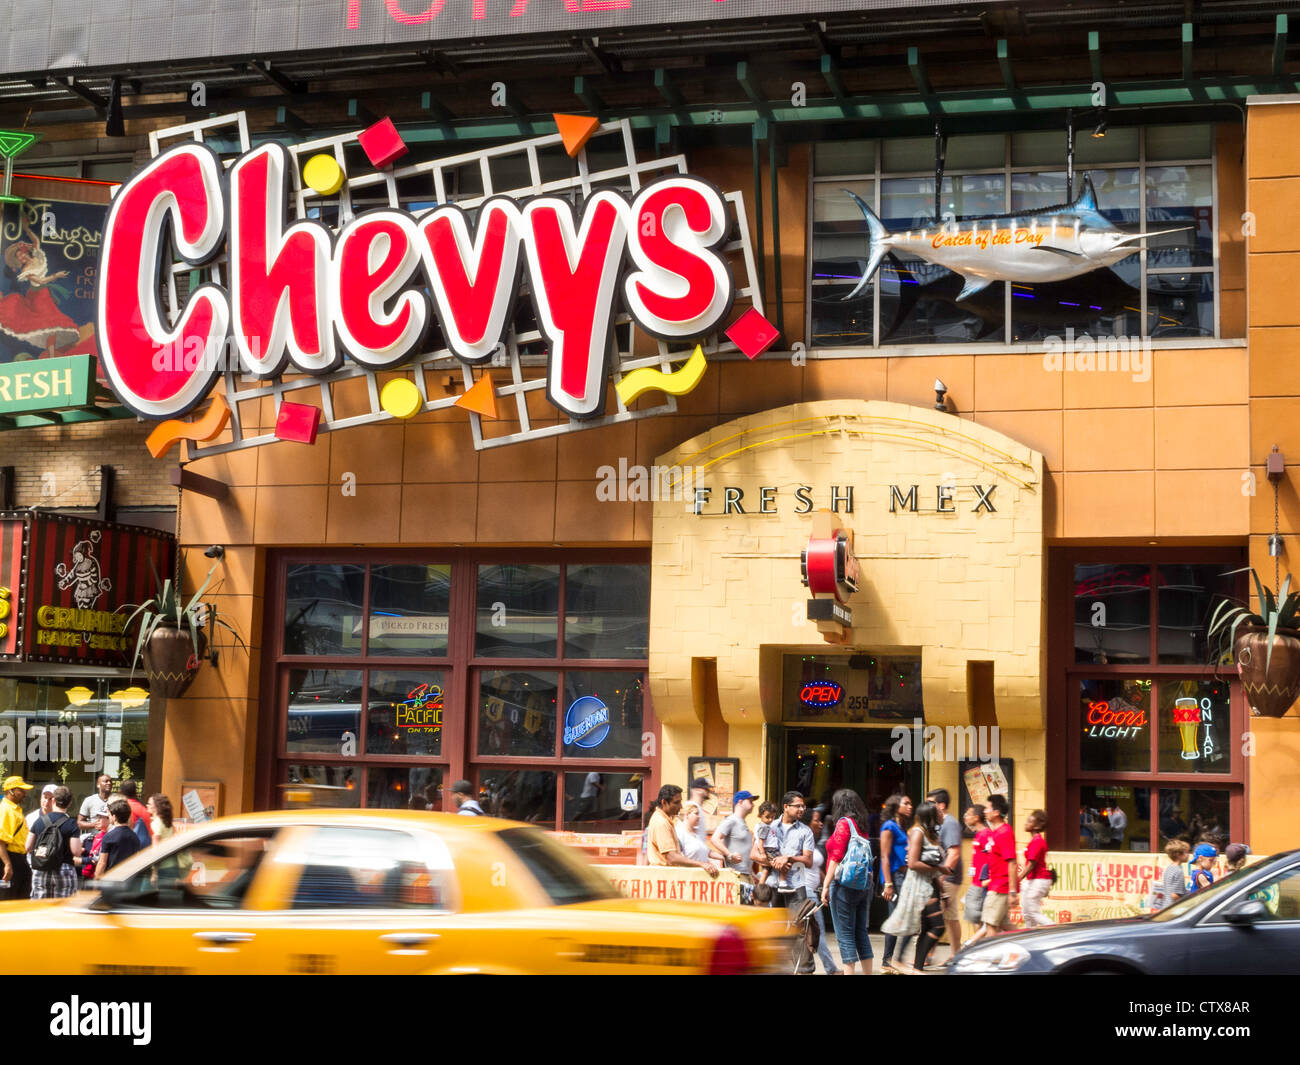 Chevys Fresh Mex is an American chain of Mexican-style casual dining restaurants located in the United States. The chain was founded in by Warren Simmons in Alameda, California. [6] The chain's headquarters are currently located in Cypress, California.